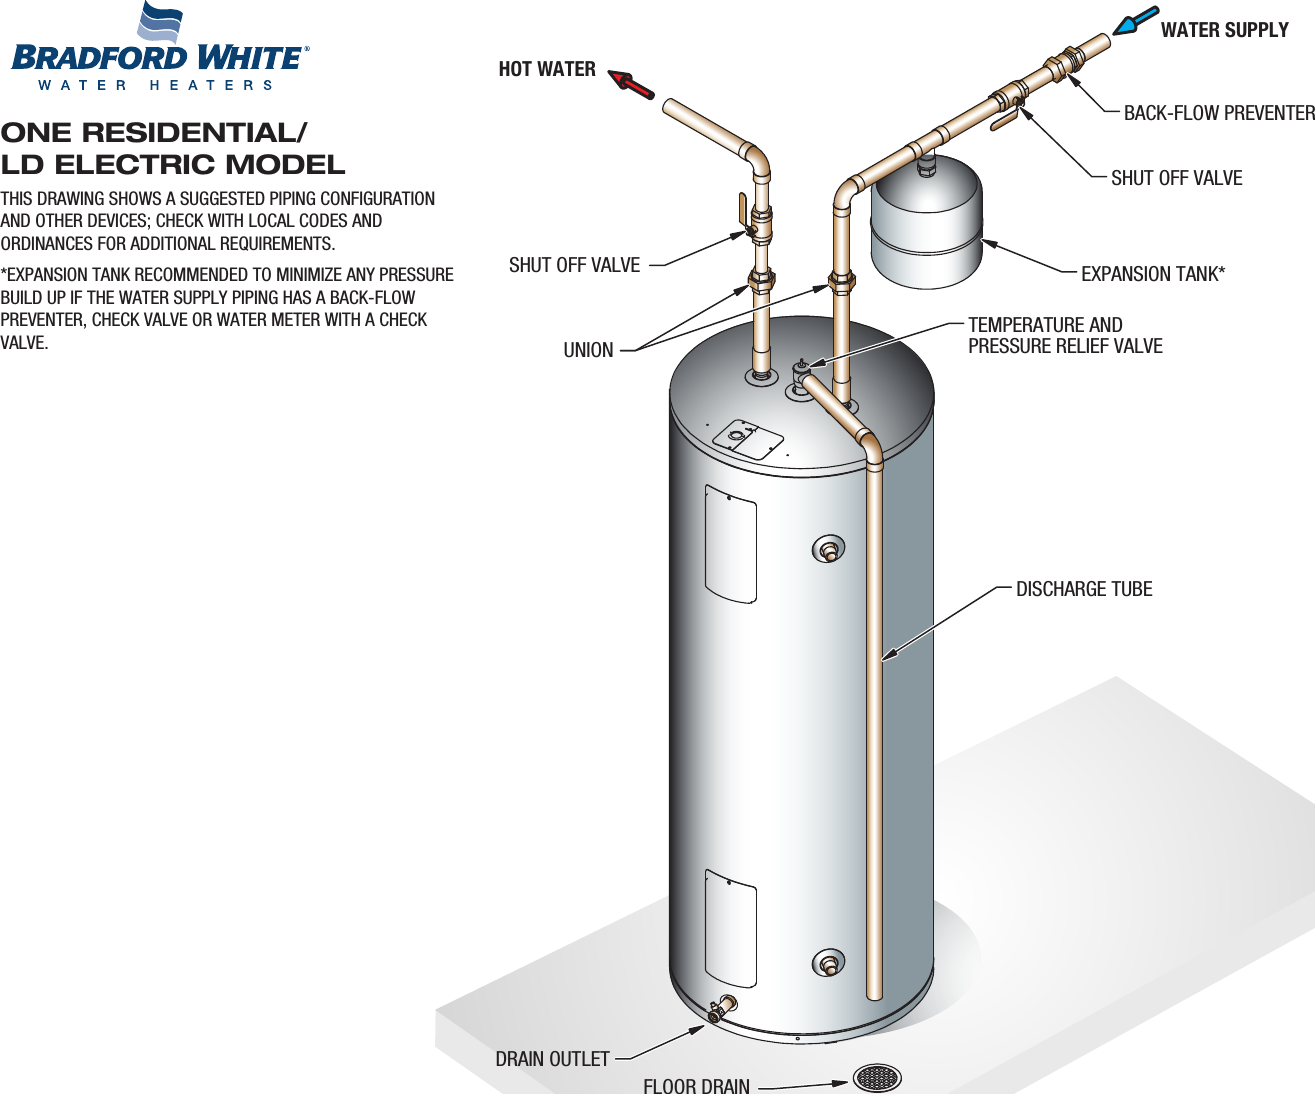 Bradfordwhite Piping Diagram Residential Electric Upright Single Water  Heater With Top Connections M280R6 1E0 User ManualUserManual.wiki